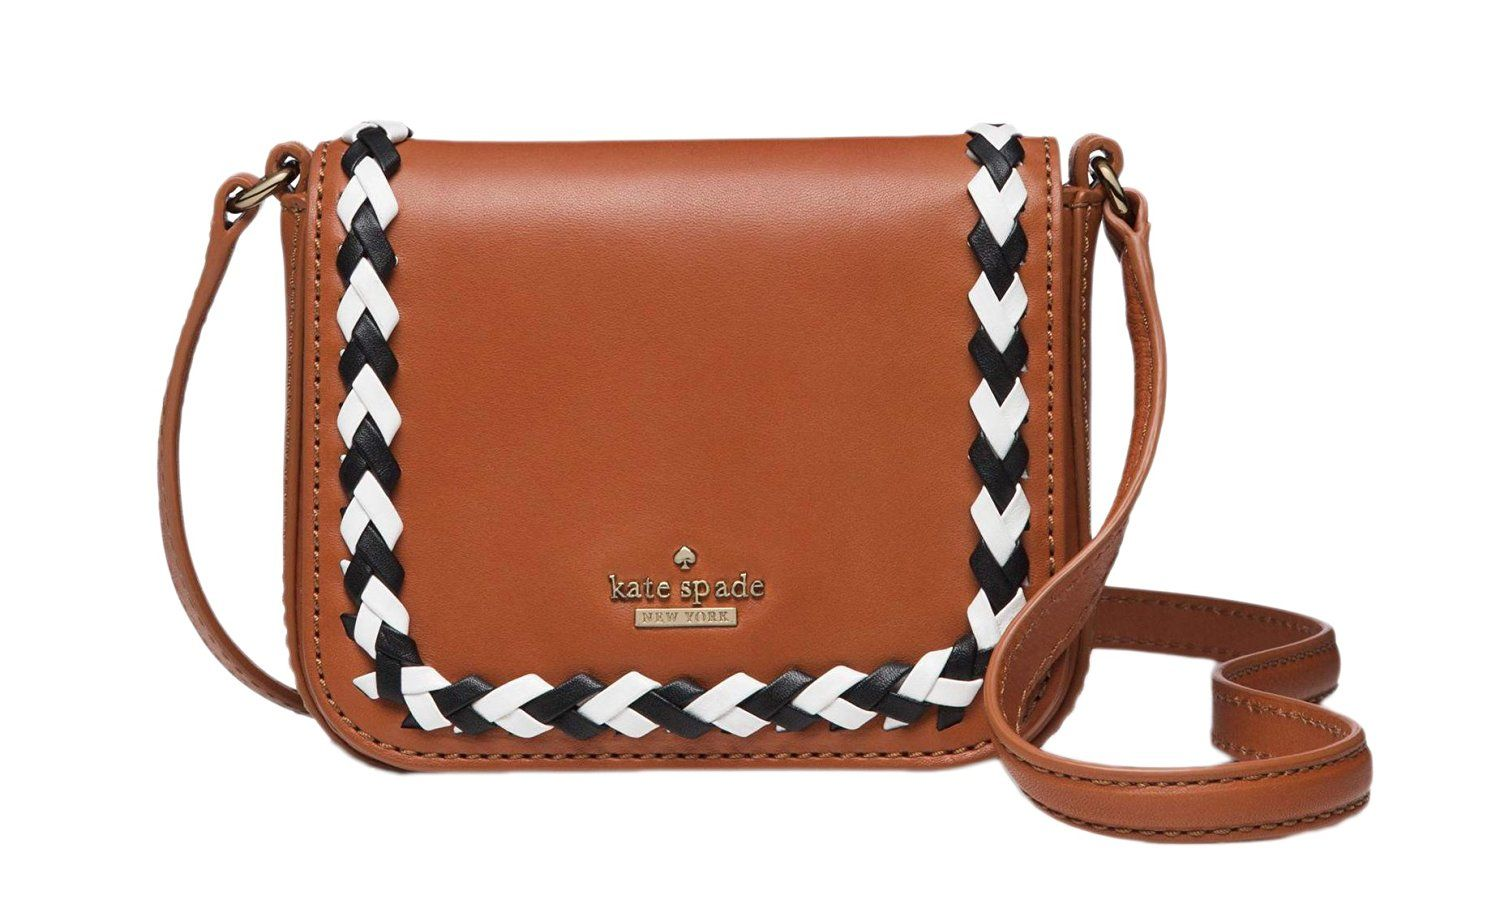 Kate Spade Wales Court Josy brown leather Crossbody bag: Shoes